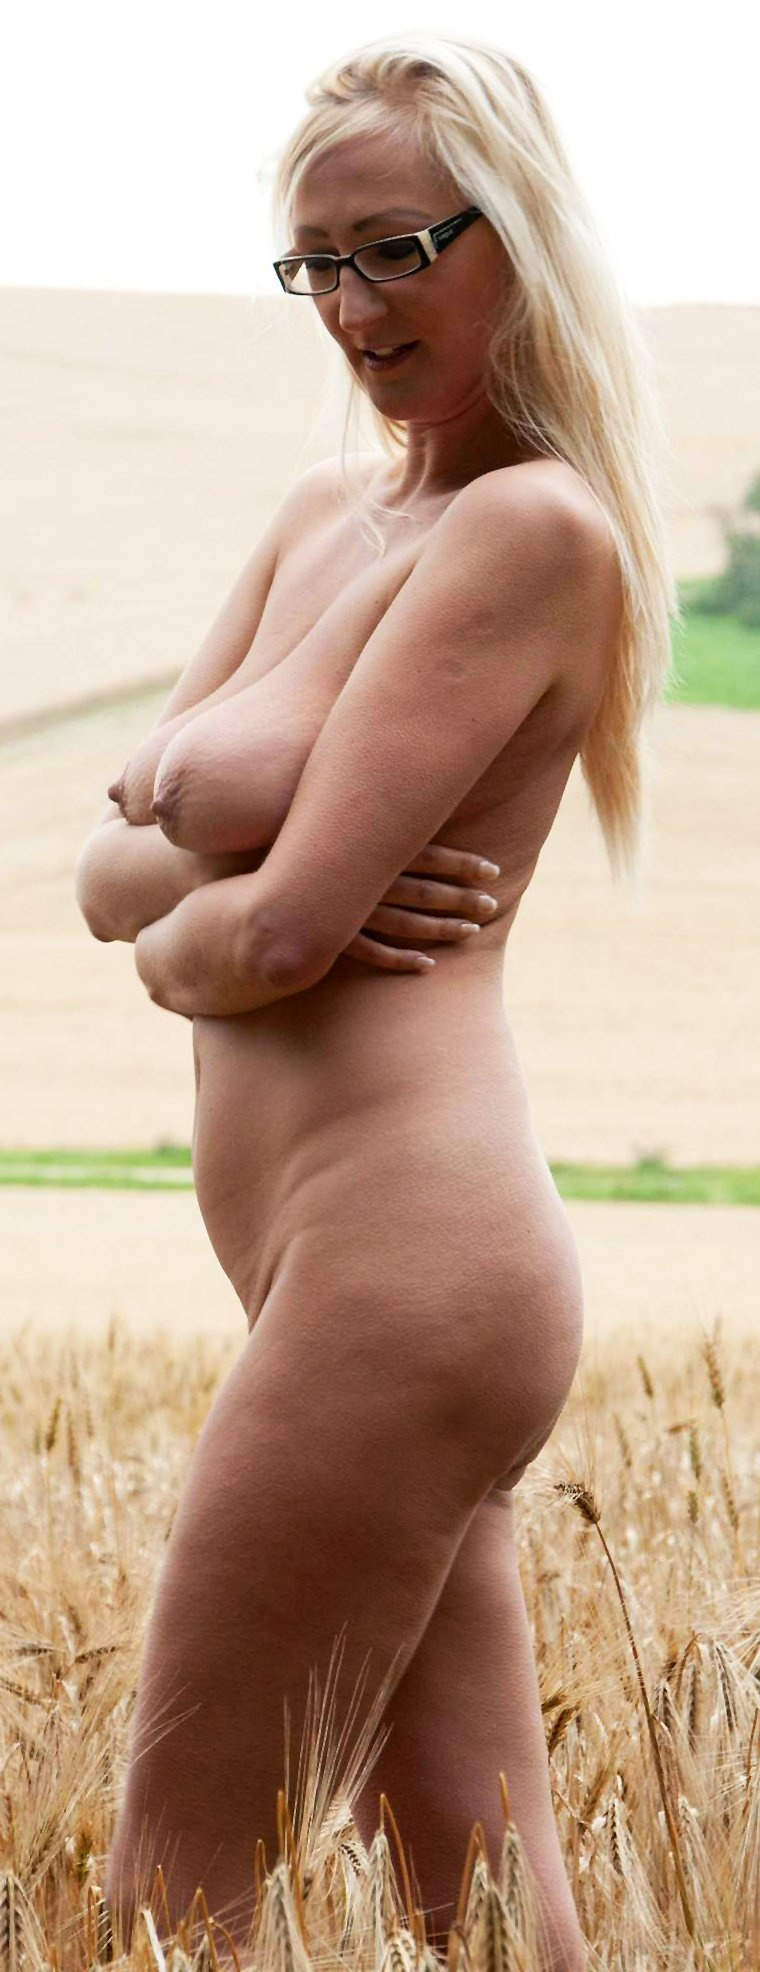 A beautiful busty blonde is walking naked in a cereal field